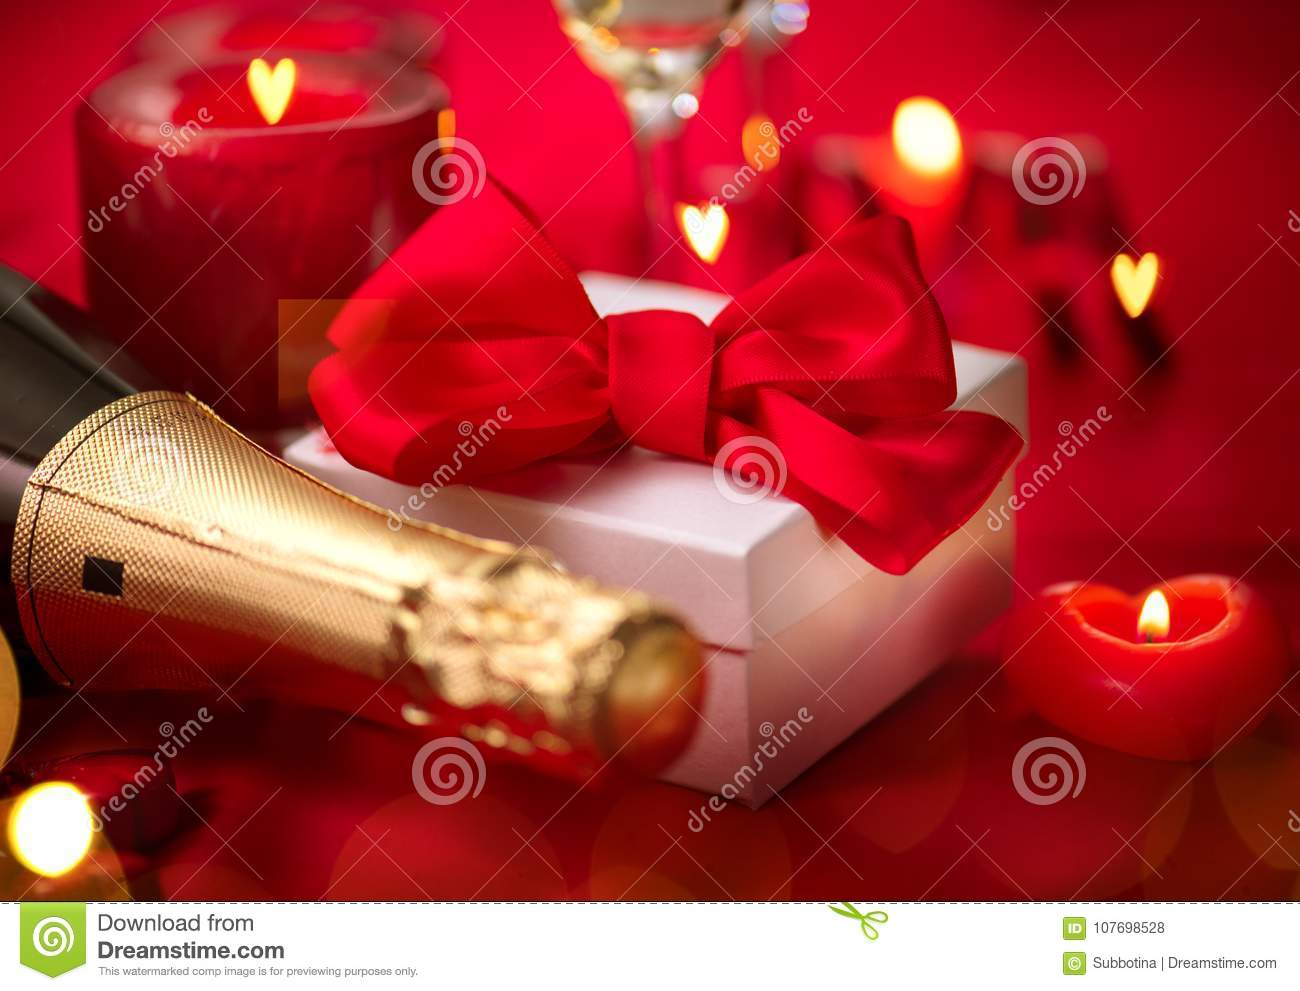 Valentines Day Romantic Dinner Date Champagne Candles And Gift